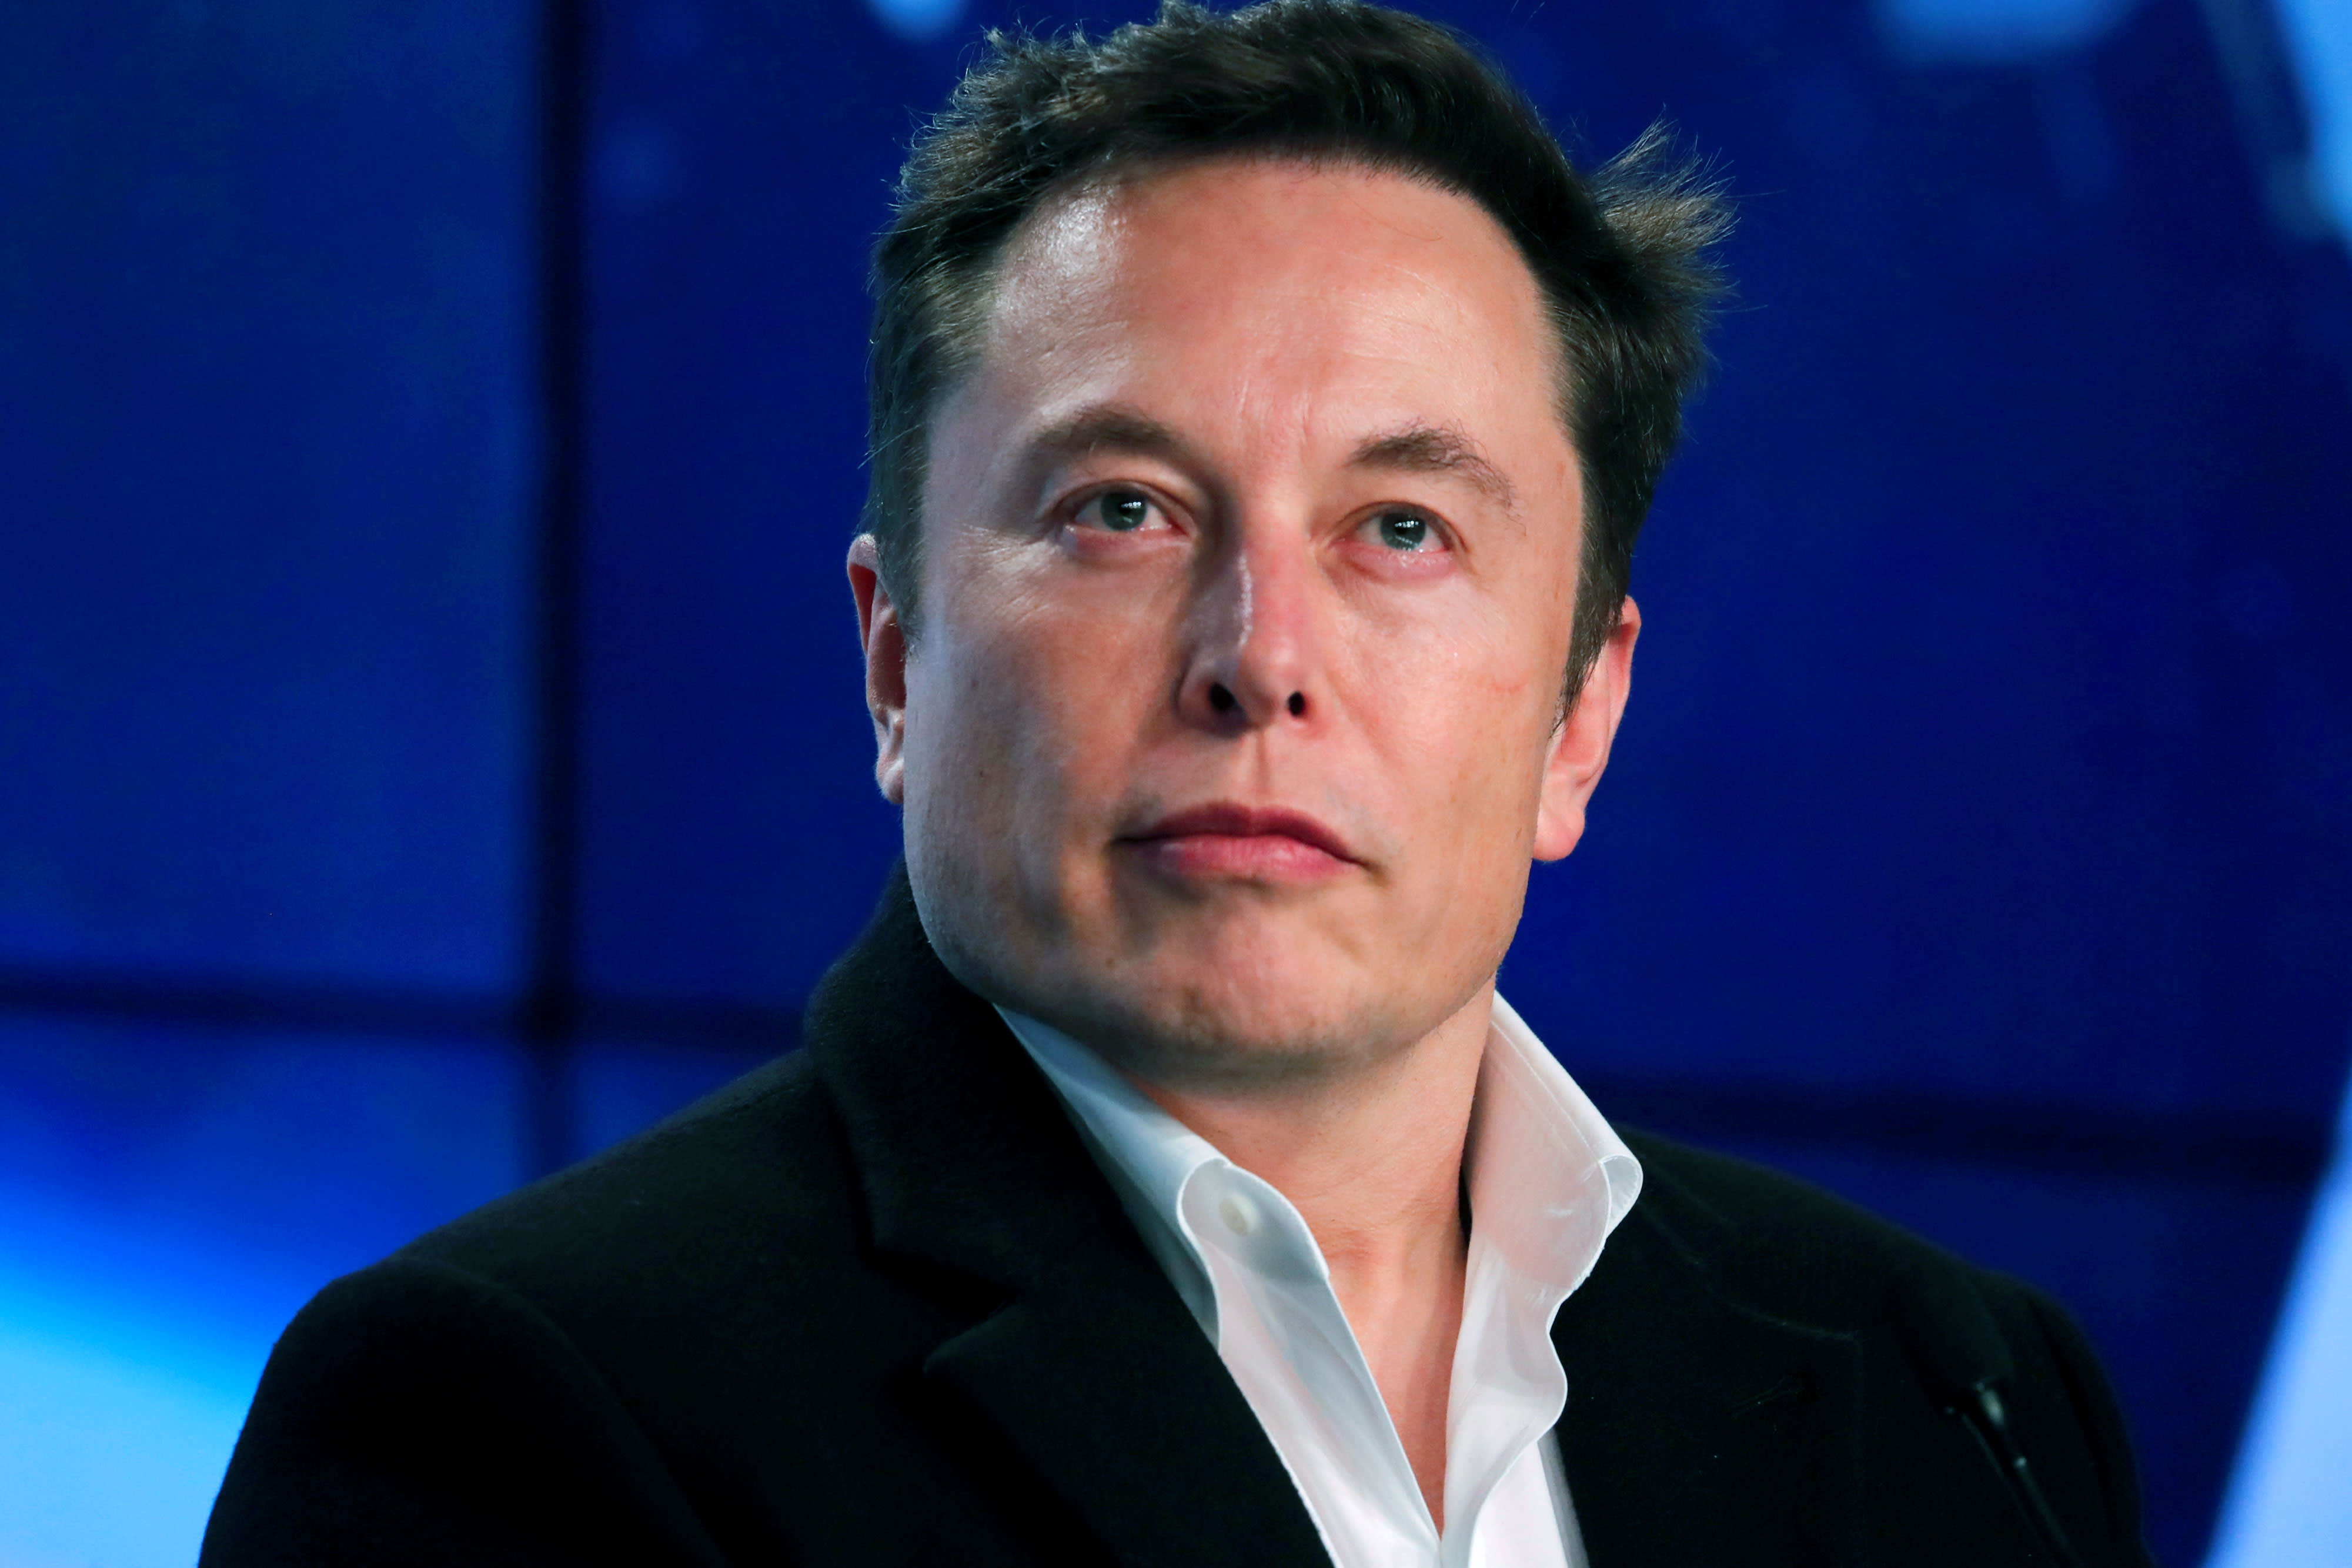 Elon Musk at battery day: Tesla deliveries to rise 30% to 40% in 2020 – CNBC